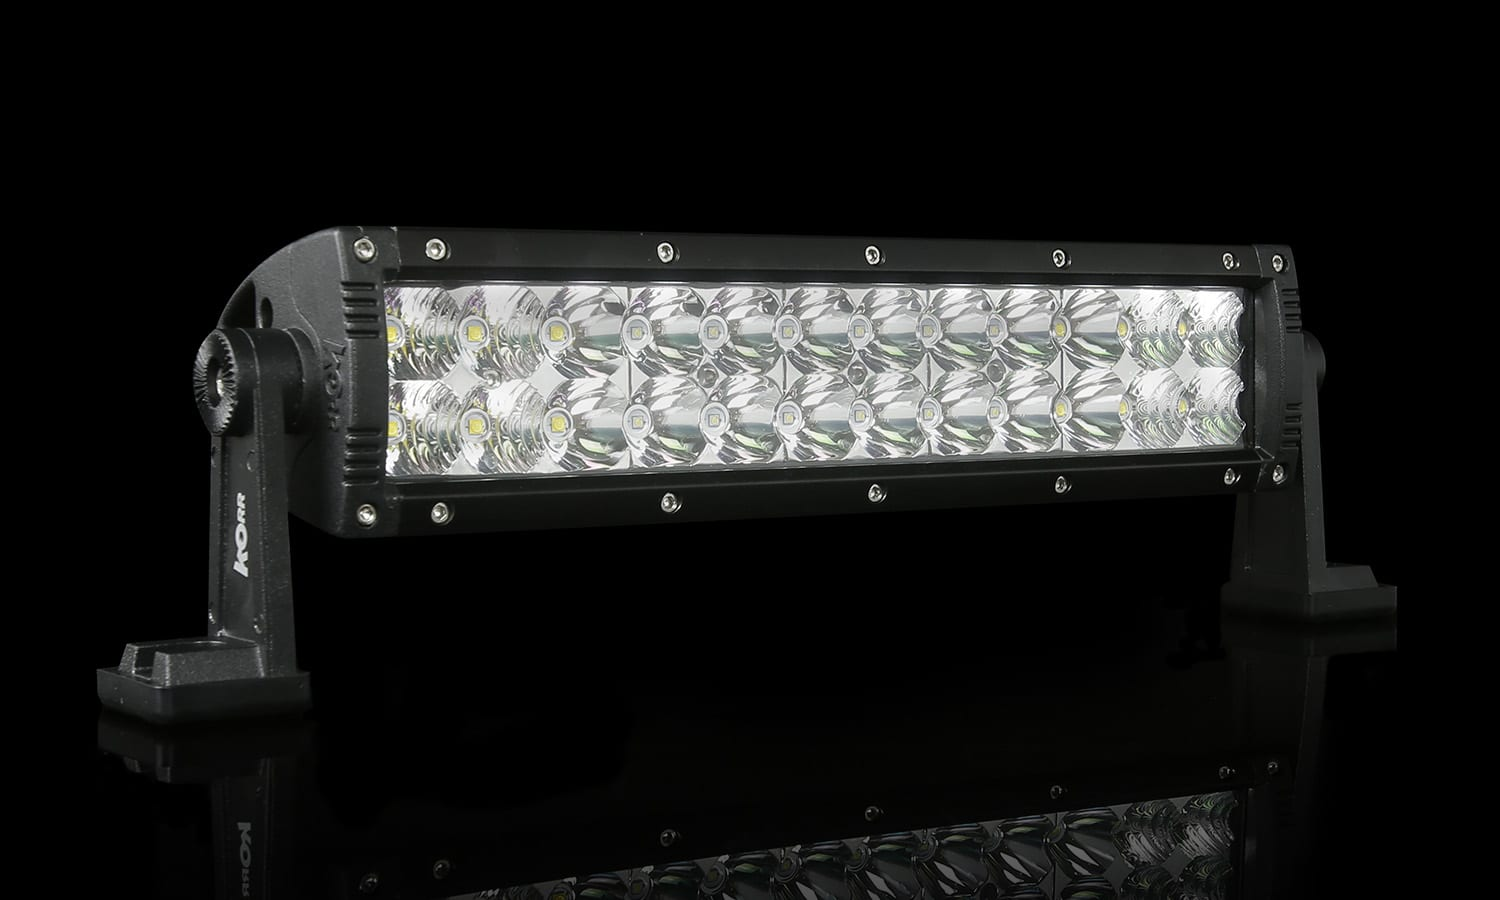 xd gen3 12 dual row led light bar xdd400 g3 hard korr australia. Black Bedroom Furniture Sets. Home Design Ideas